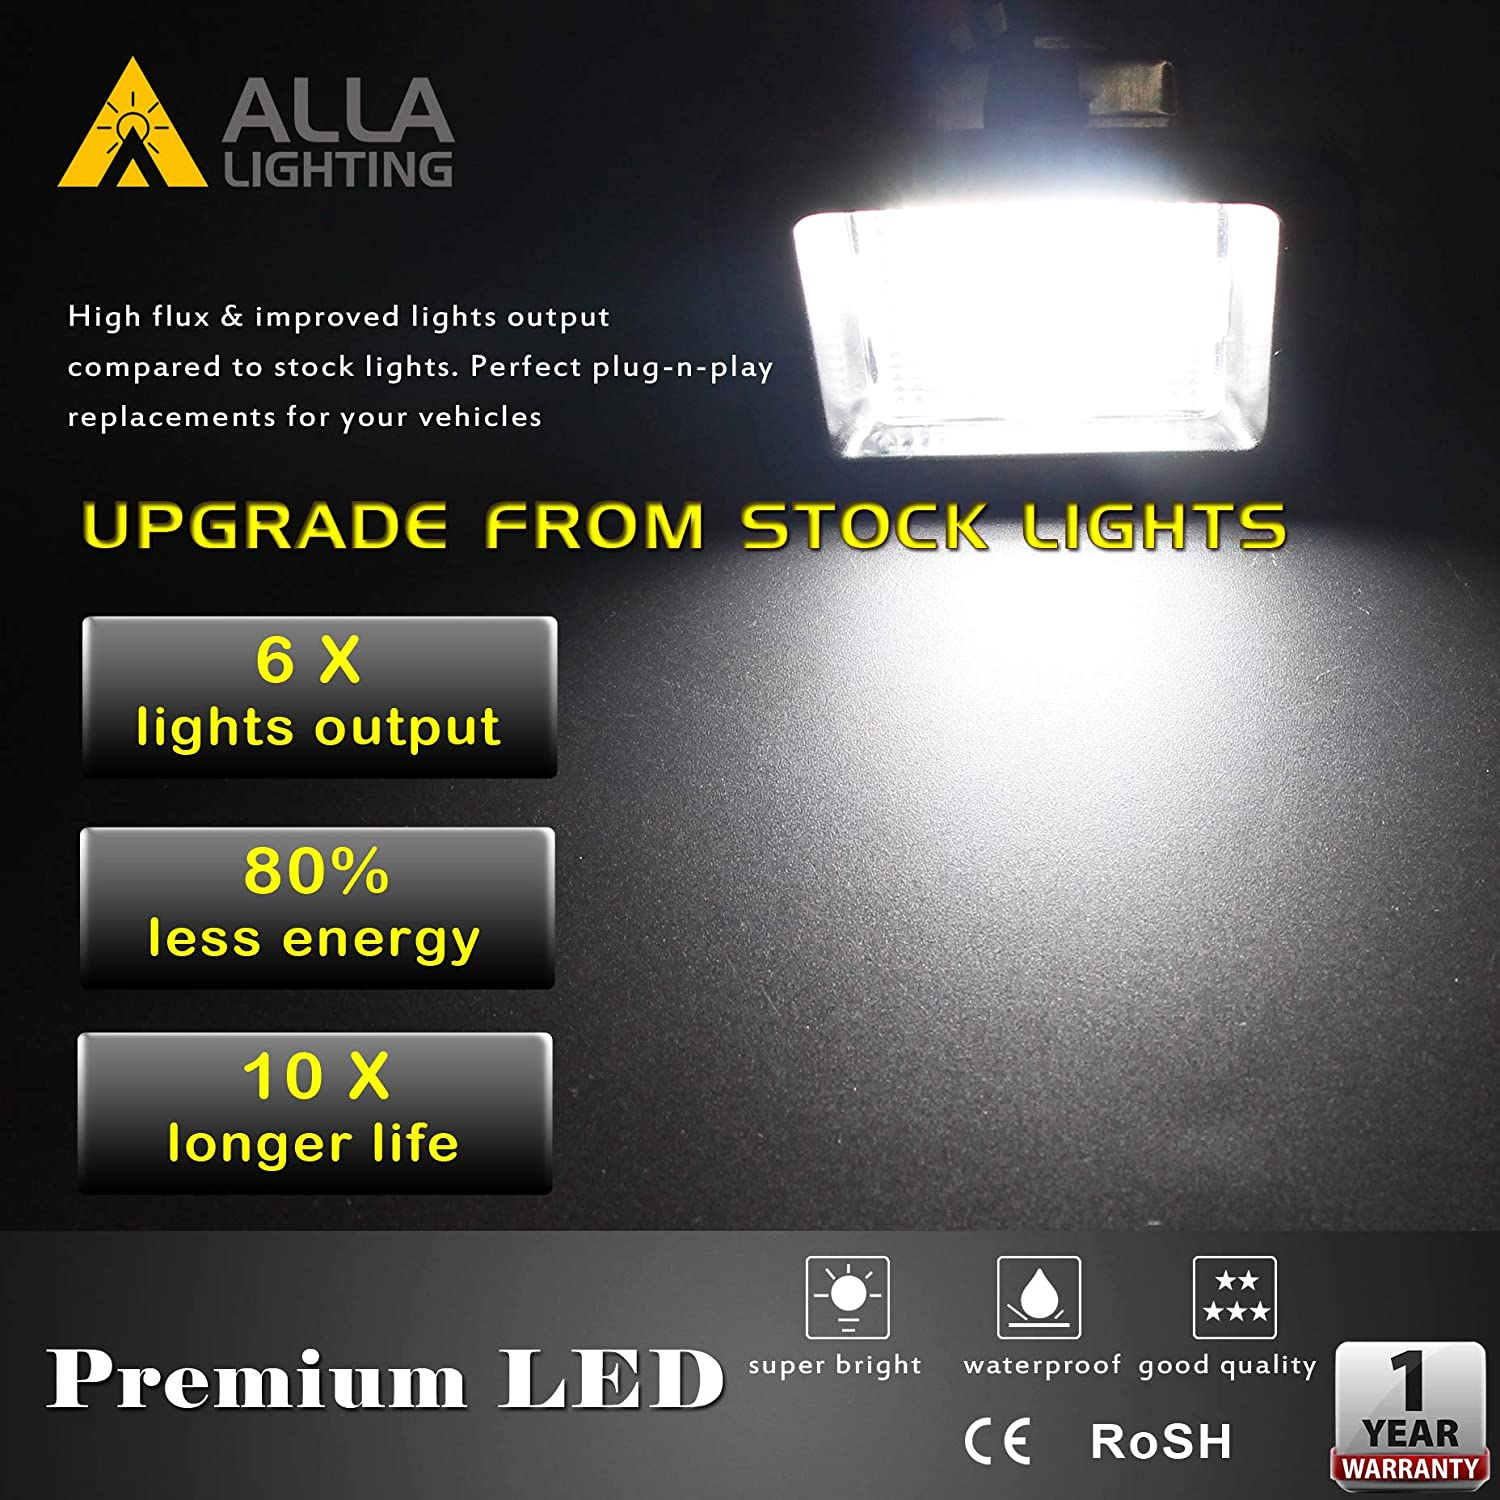 6000K Xenon White Alla Lighting CANBUS Super Bright LED License Plate Light Lamp Assembly Replacement for 2015-2019 Ford F-150 Pickup Truck Raptor